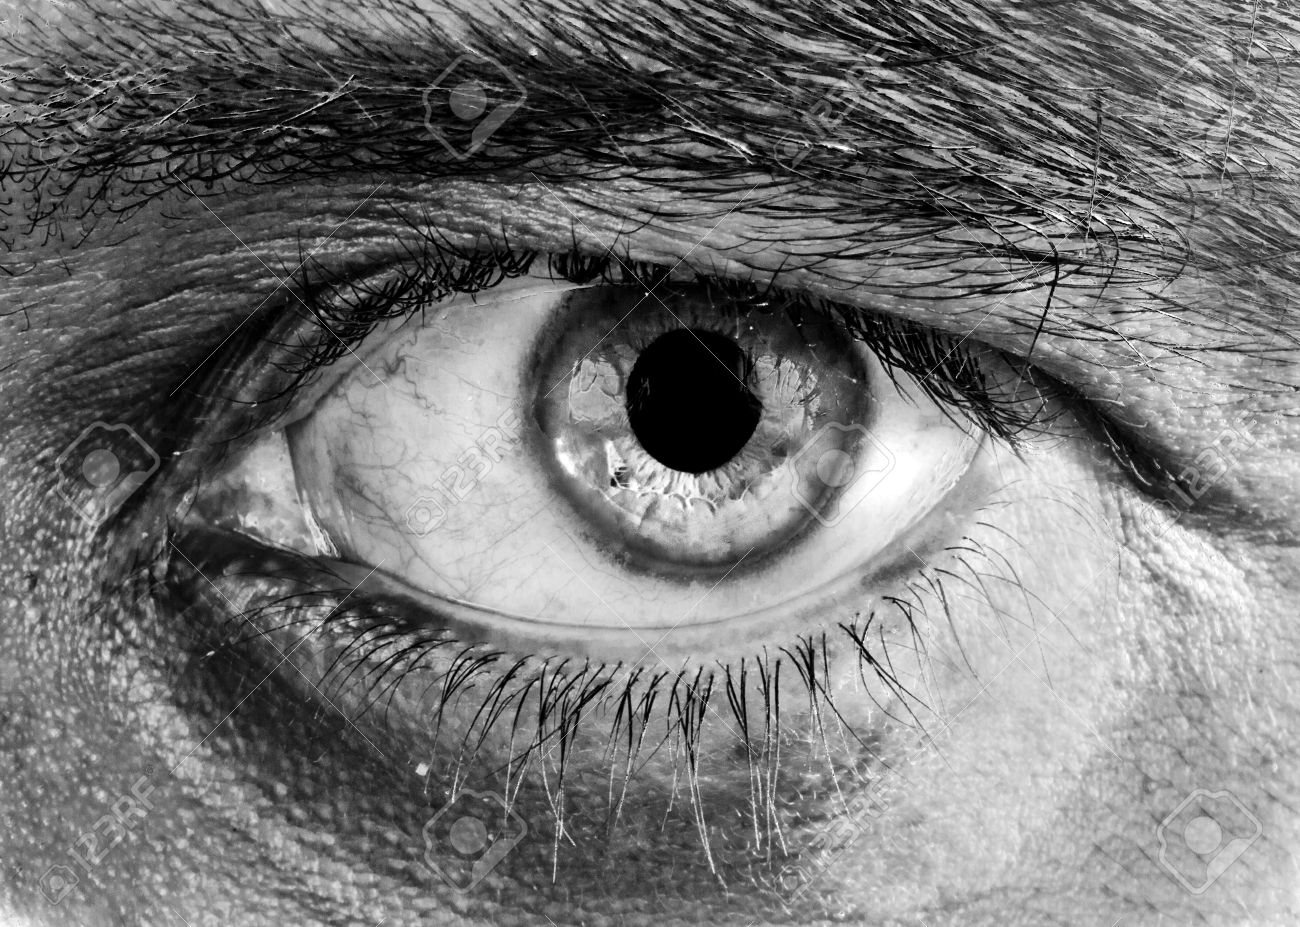 Human eye in black and white with soft focus and high contrast